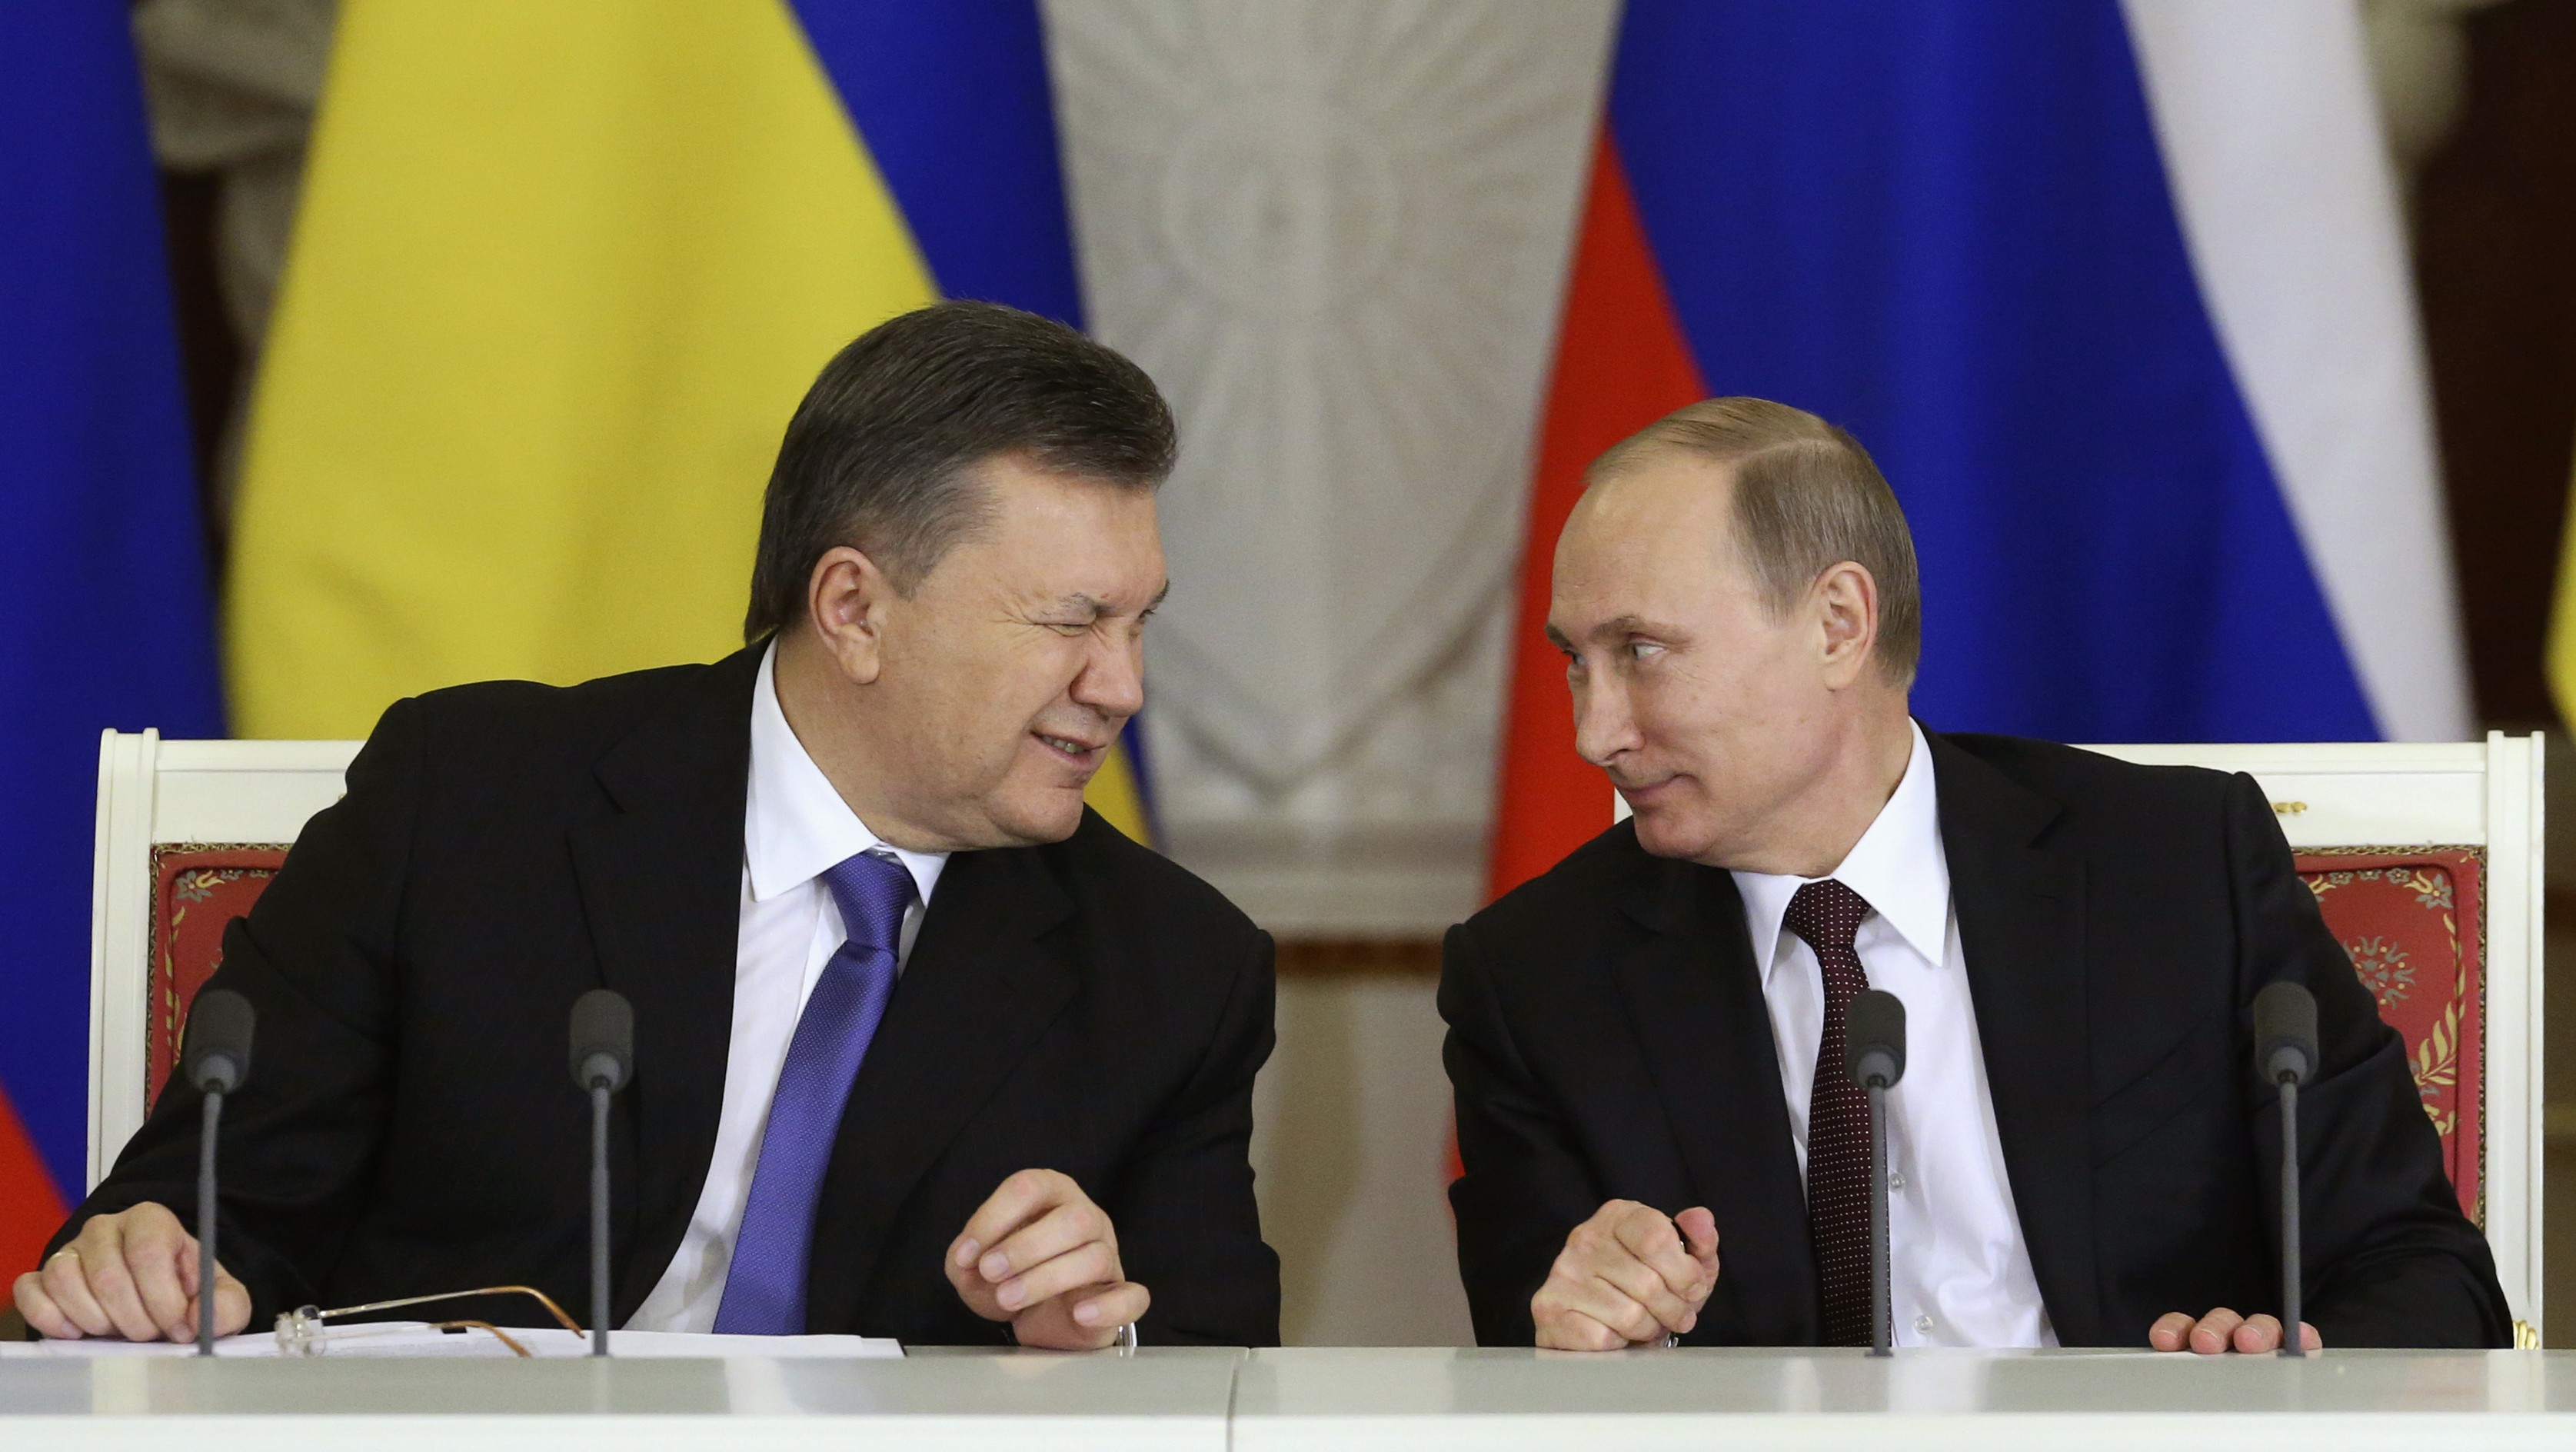 Ukrainian President Yanukovich gives a wink to his Russian counterpart Putin during a signing ceremony after a meeting of the Russian-Ukrainian Interstate Commission at the Kremlin in Moscow